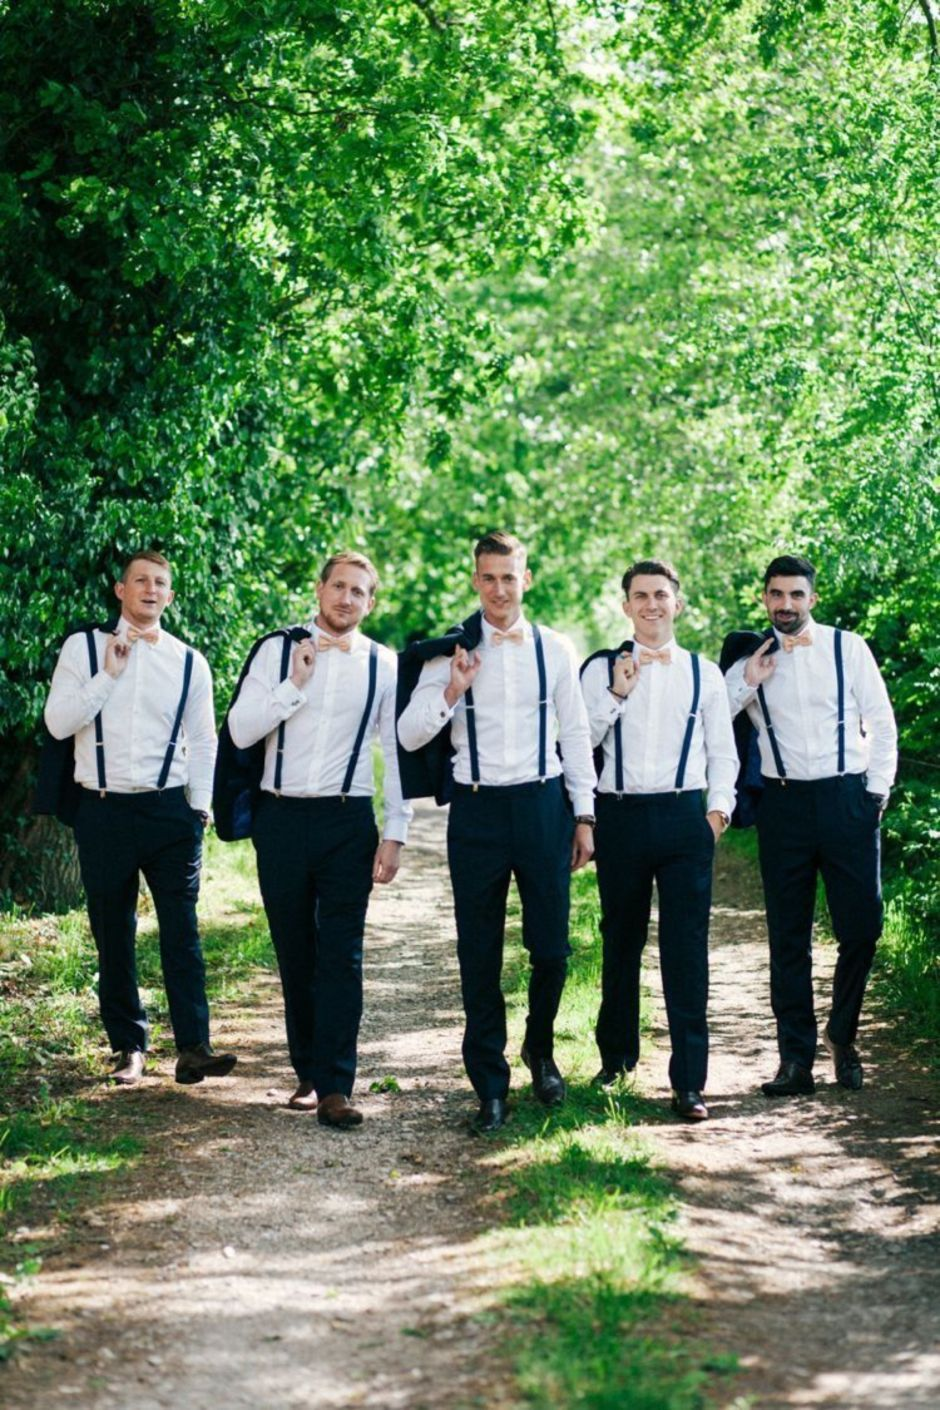 100+ Groomsmen Photos Poses Ideas You Can't Miss 41